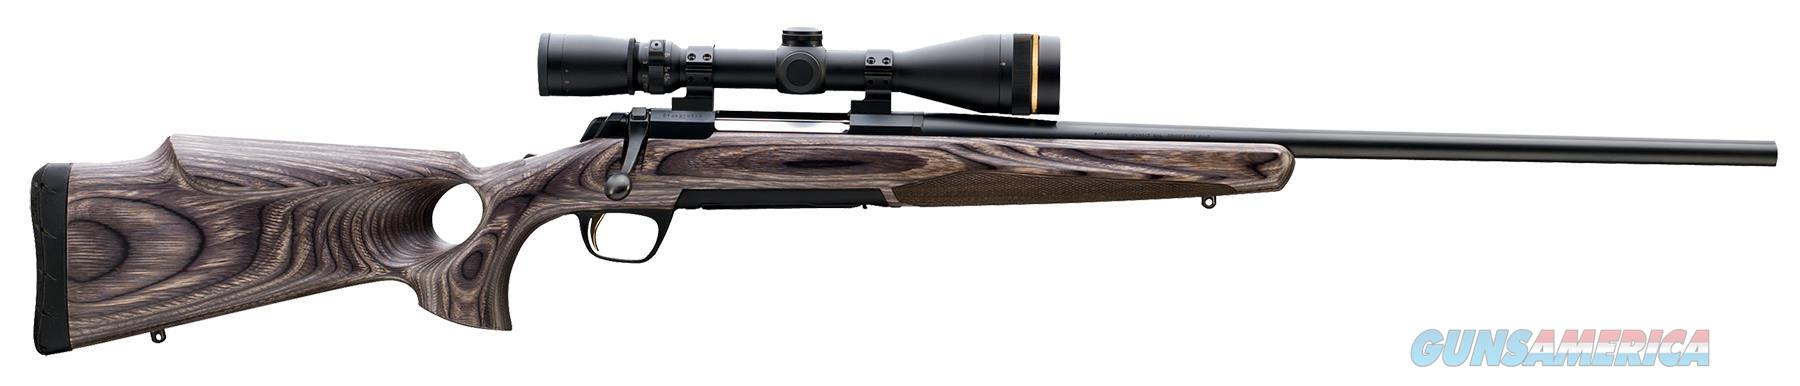 BROWNING XBOLT ECLP HUNT 30/06 NS 035299226  Guns > Rifles > Browning Rifles > Bolt Action > Hunting > Blue